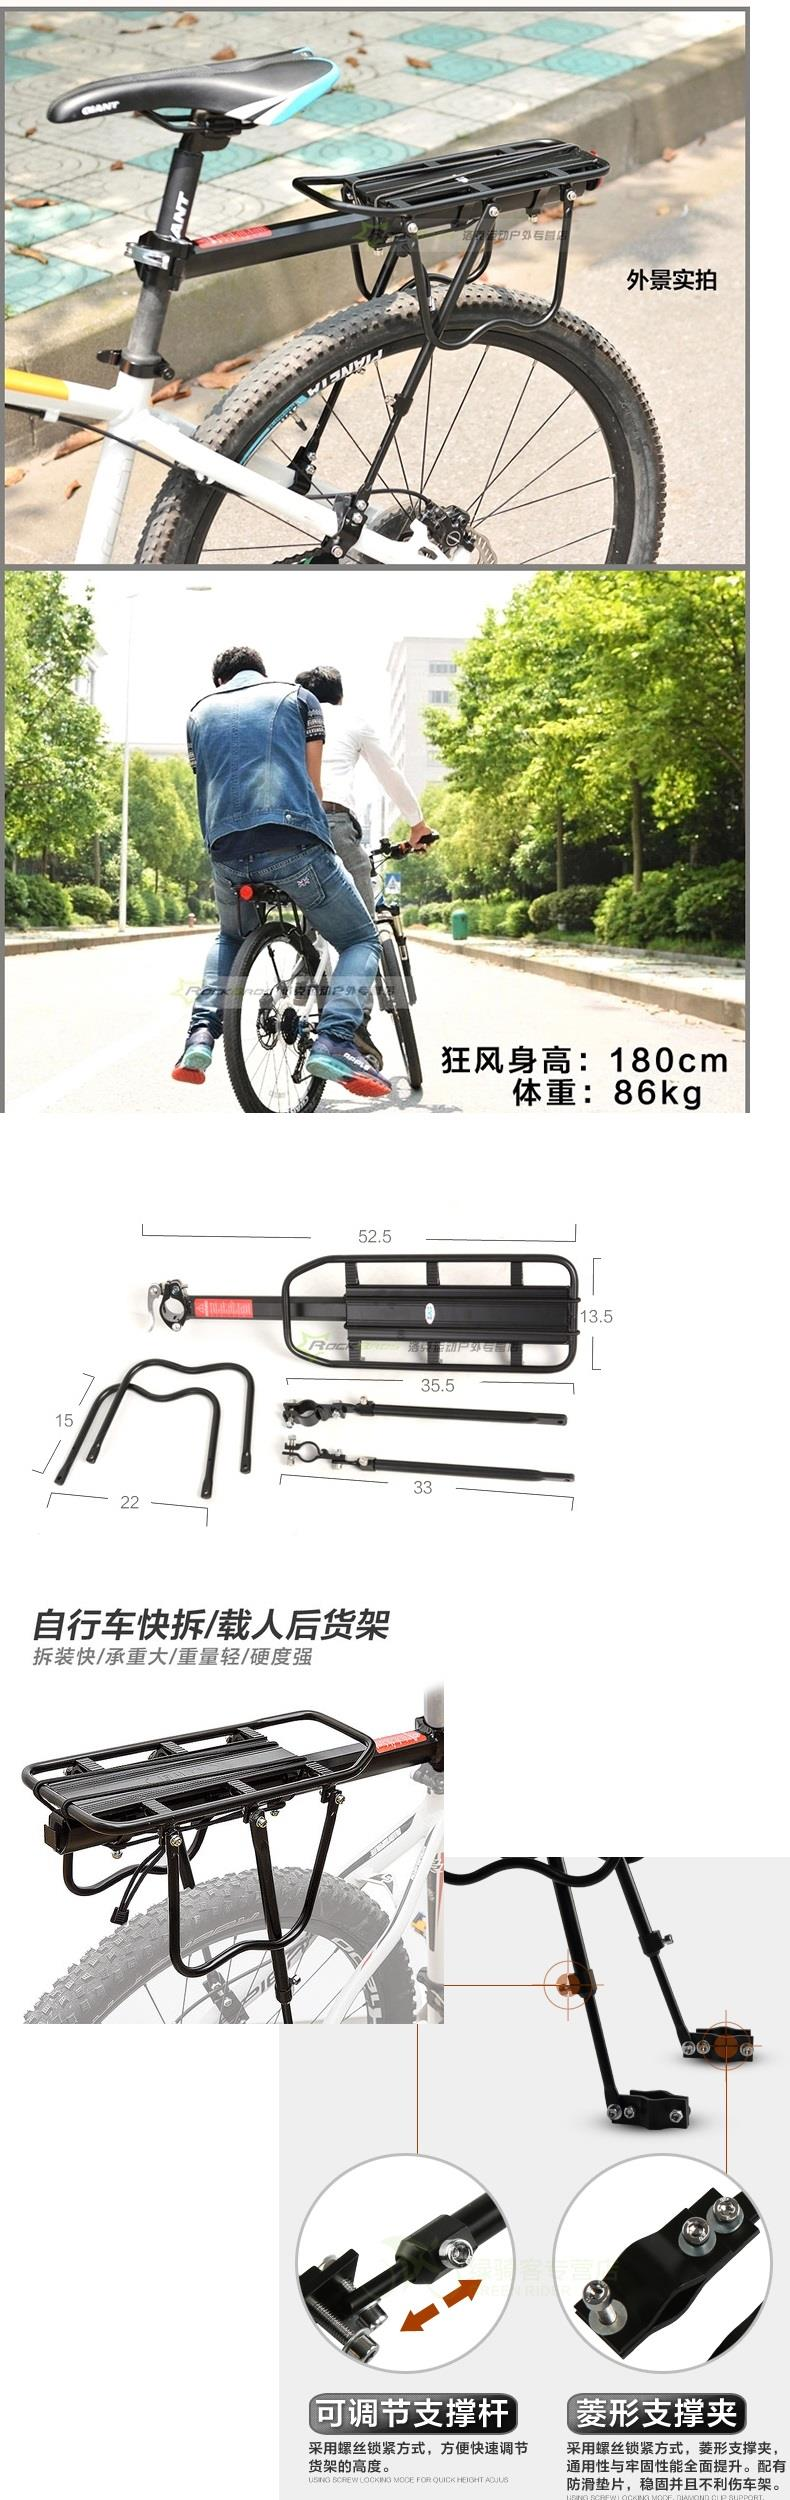 ALUMINIUM REAR RACK CARRIER FOR MTB BICYCLE FODING BIKE